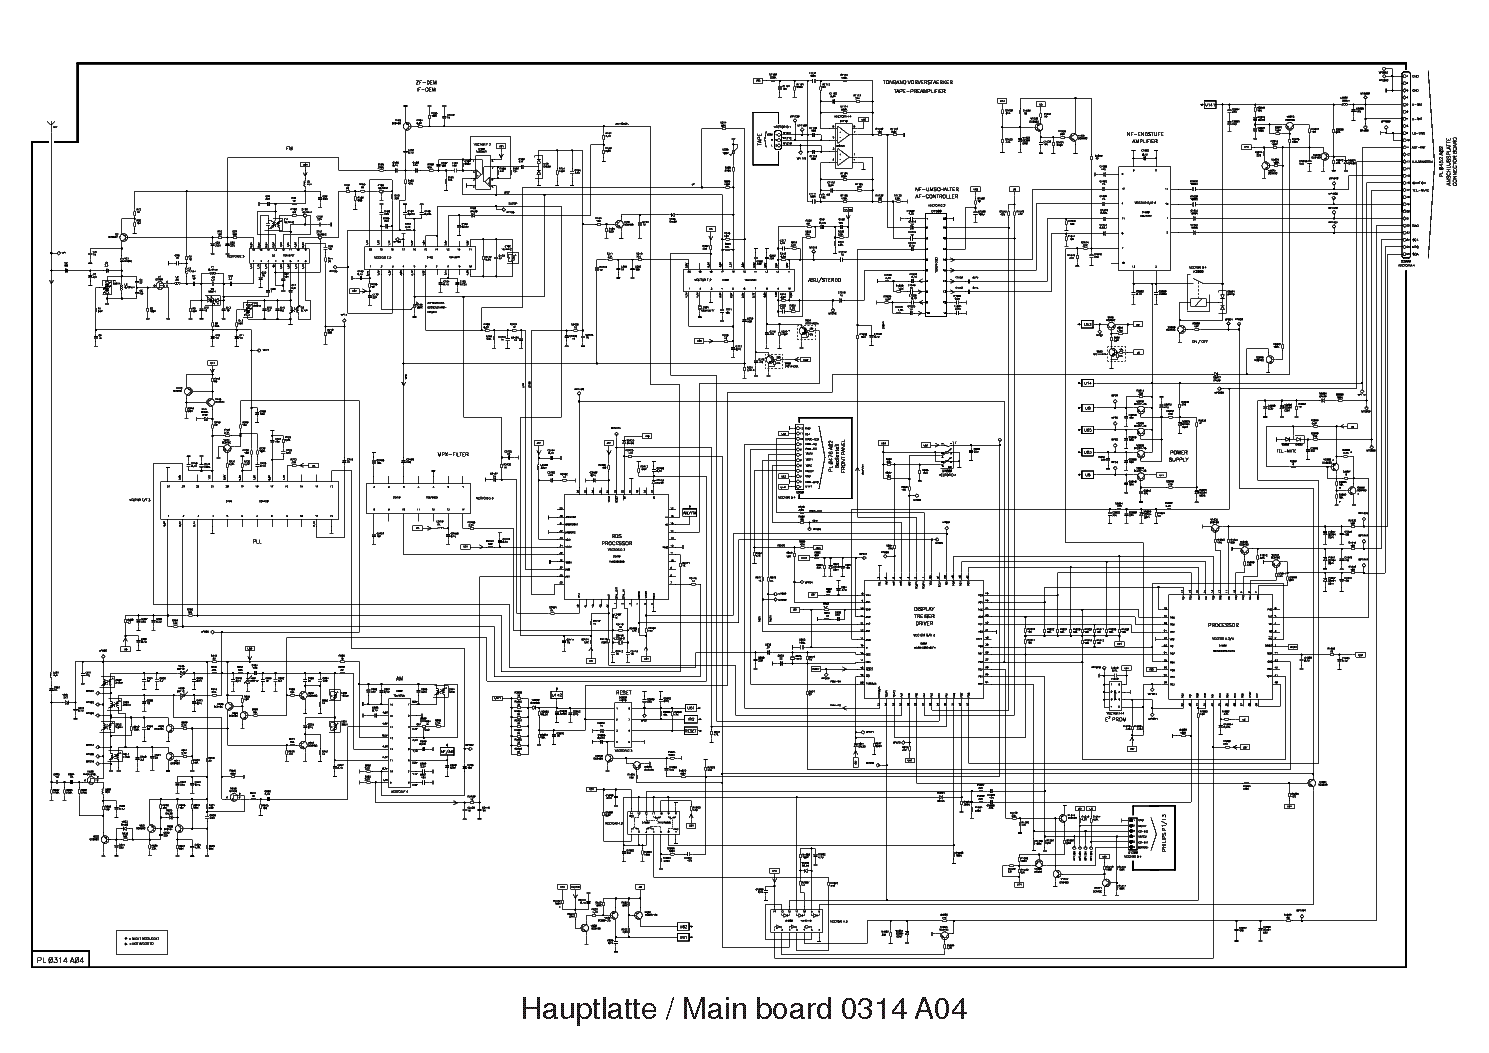 LY_9197] Blaupunkt Wiring Diagram Additionally Blaupunkt Wiring Diagram  Further Wiring DiagramIstic Inama Itive Rect Mohammedshrine Librar Wiring 101